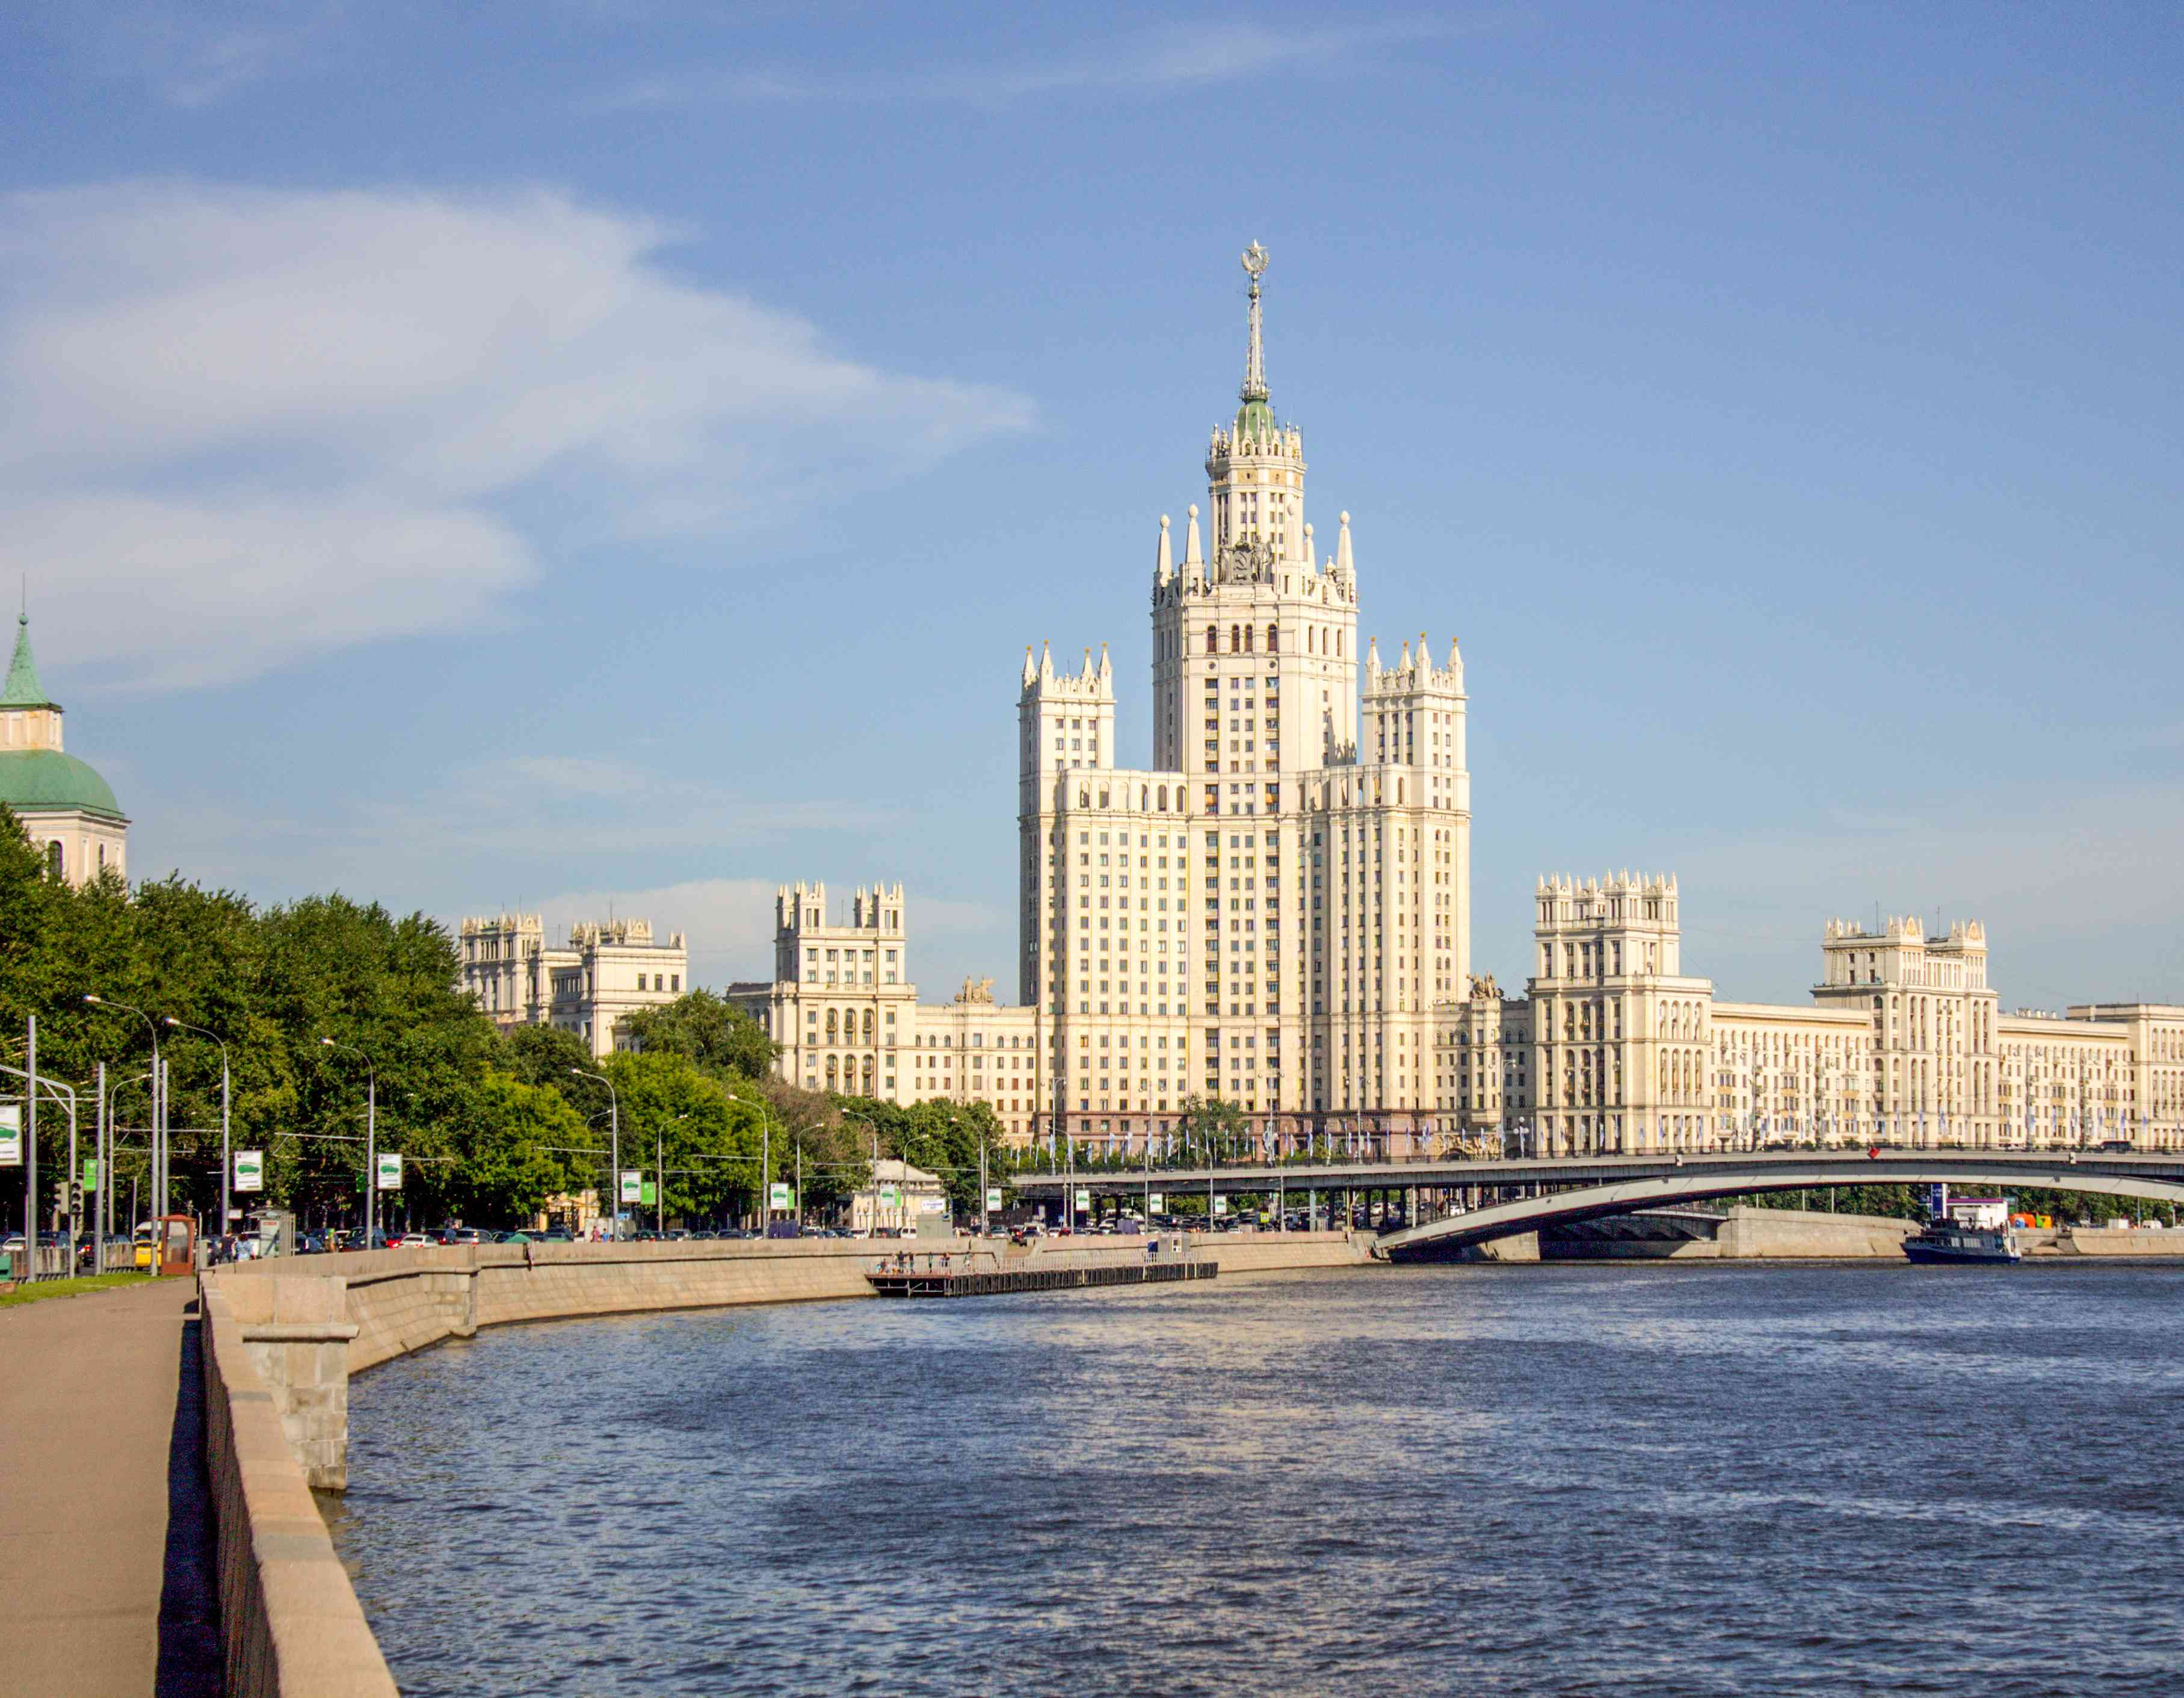 View of the Moskva river with tall buildings in the background